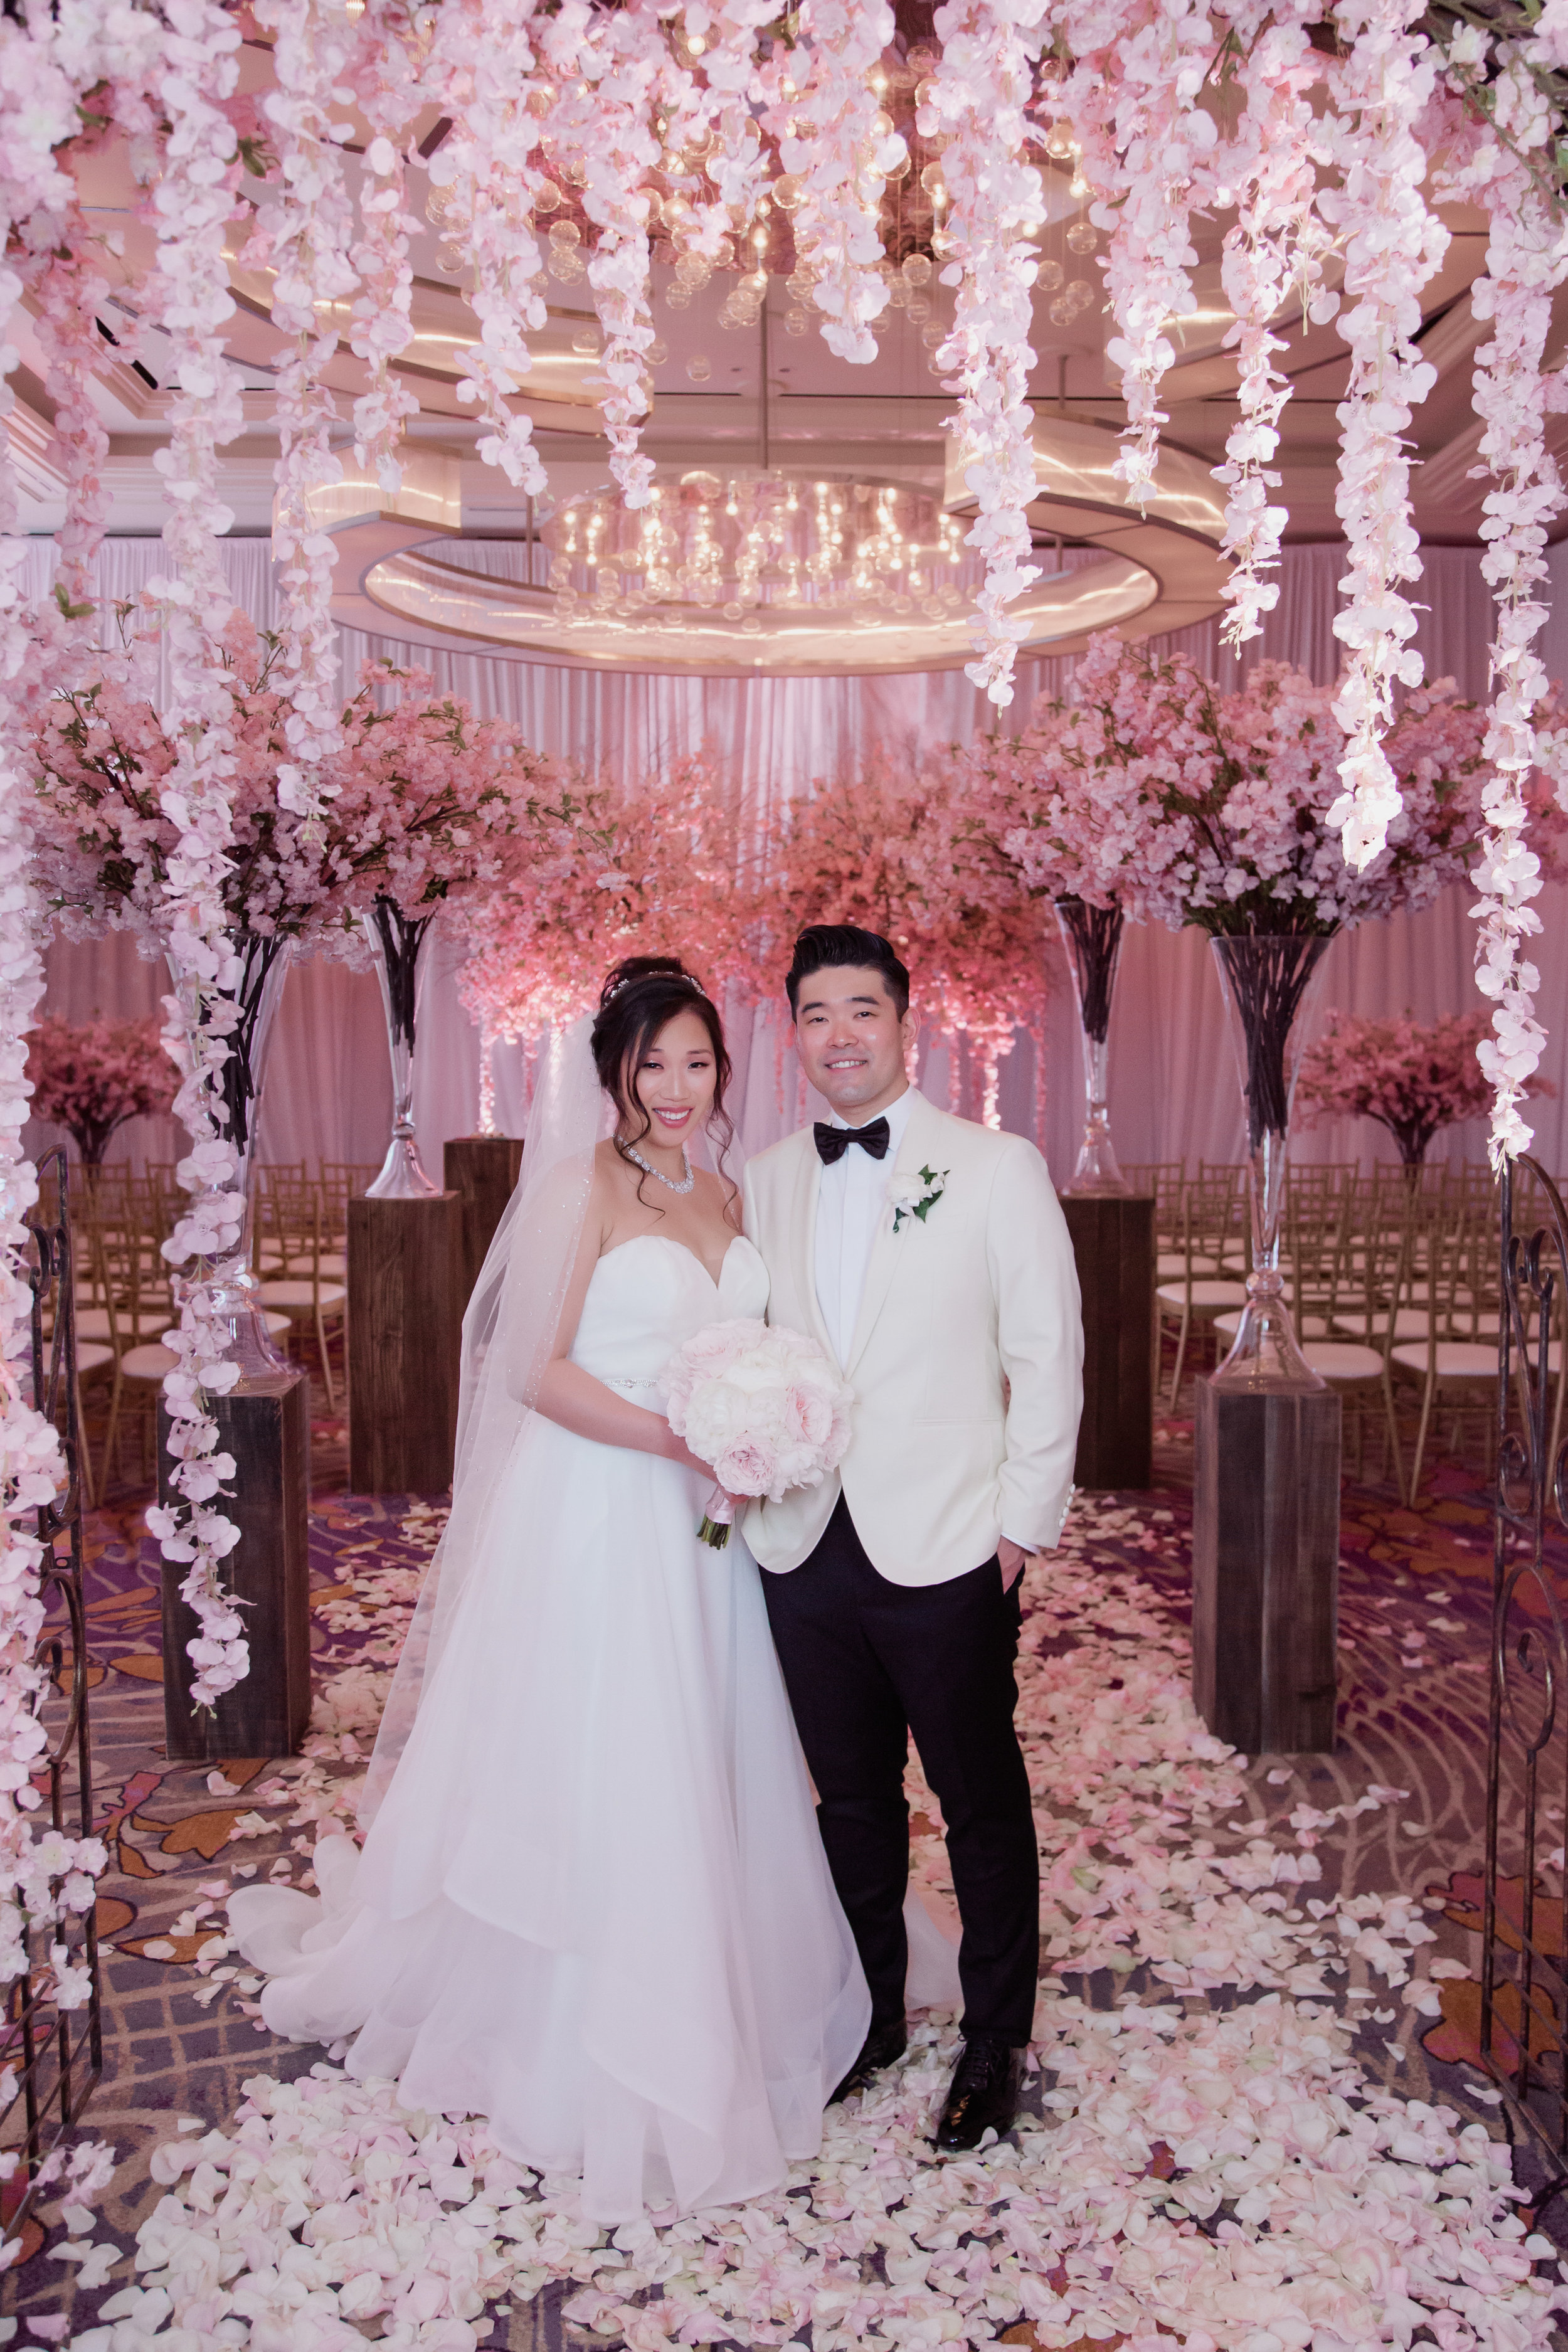 Pretty in pink cherry blossom wedding by Las Vegas Wedding Planner Andrea Eppolito at the Waldorf Astoria. Photo by Adam Frazier.